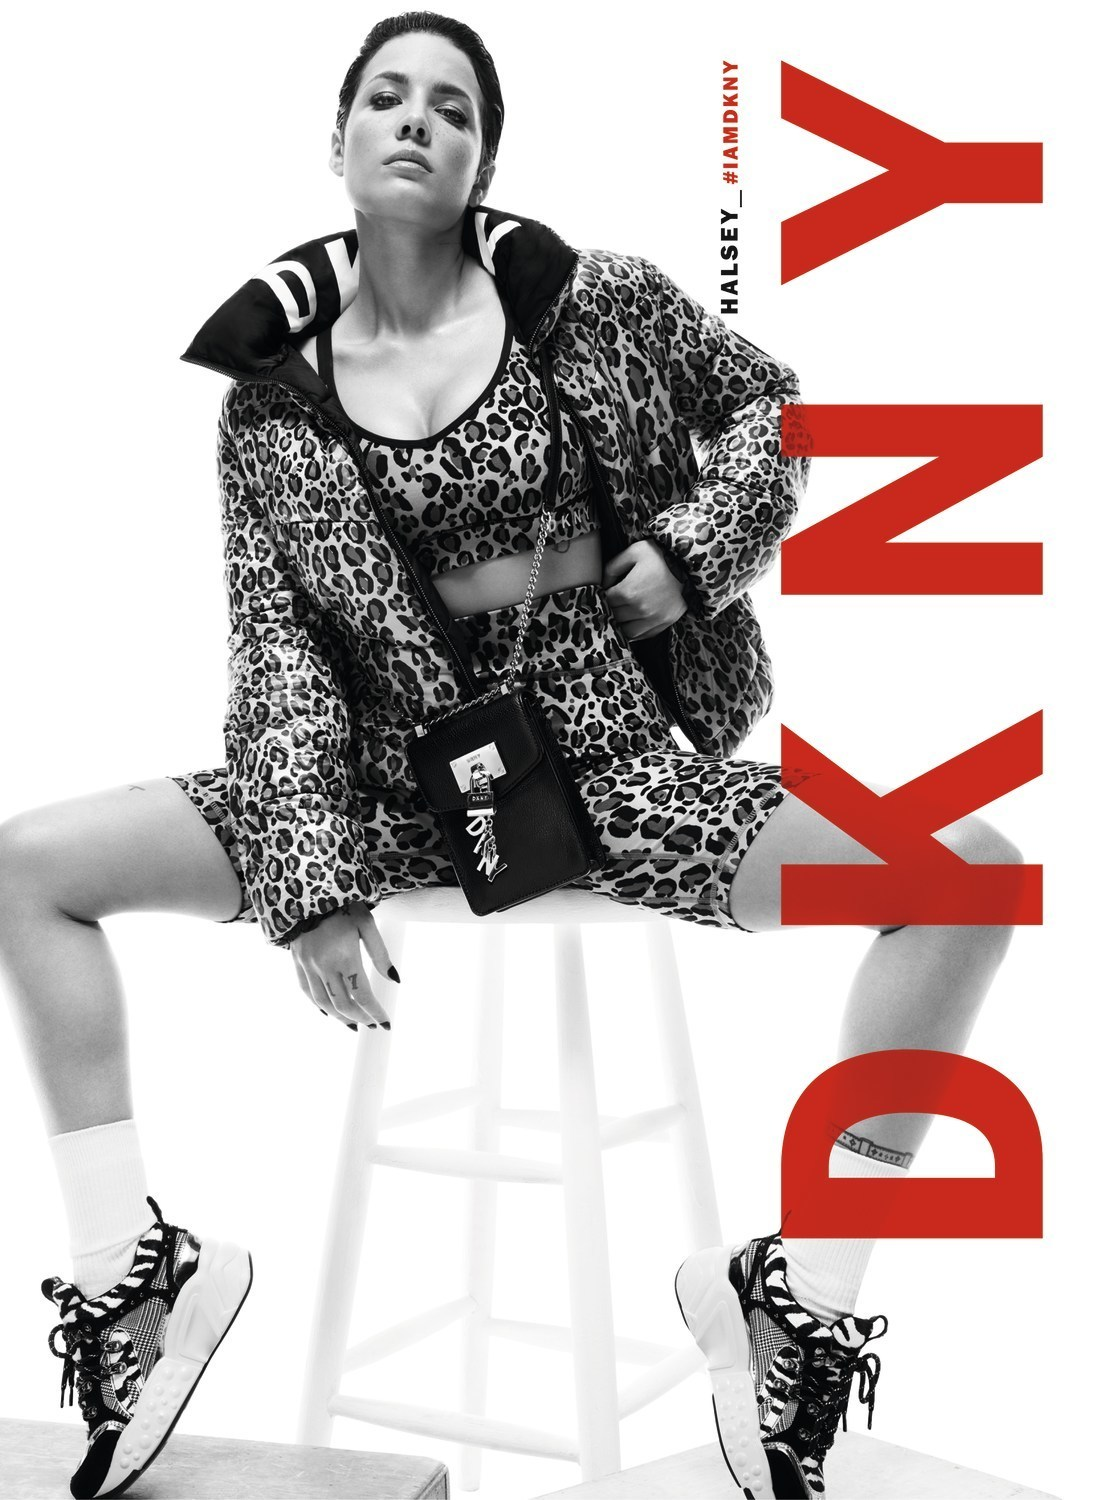 The artist Halsey, sitting on a stool with a leopard printed down jacket from the Fall 19 DKNY collection made by the Mazarine agency.